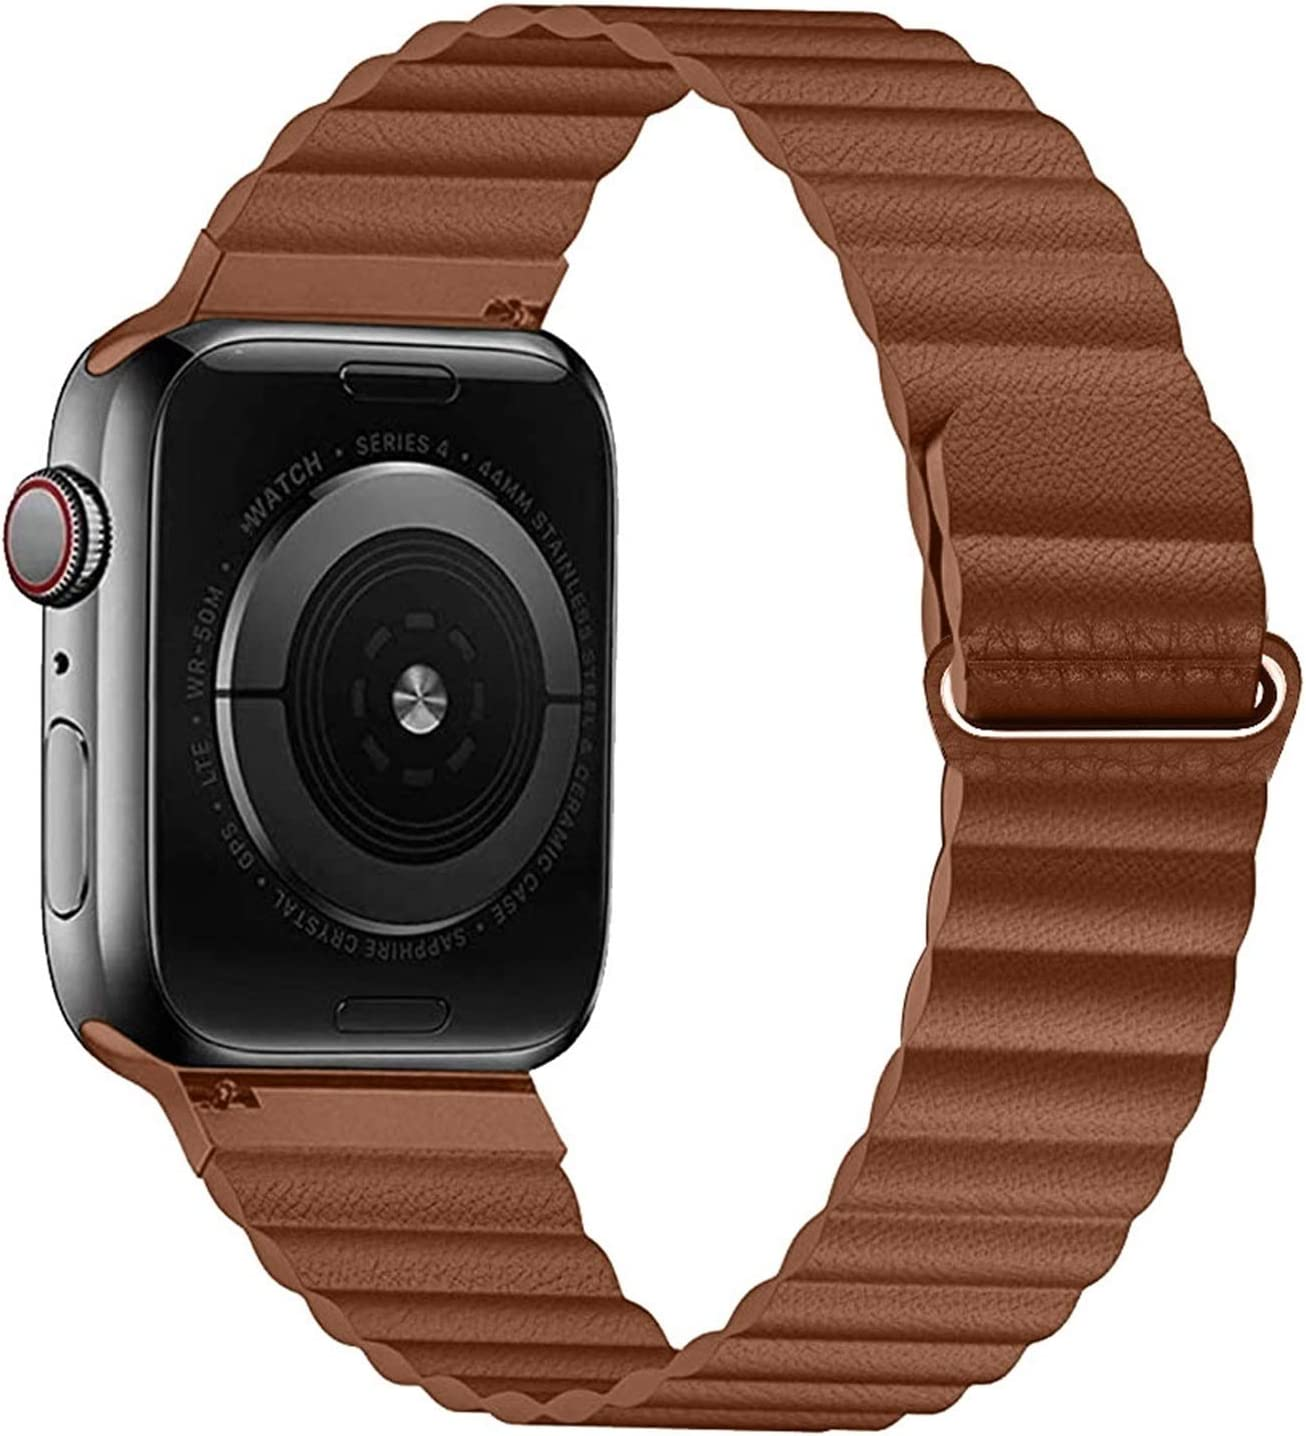 TryBEST PU Leather Loop Strap for Apple Watch Band 44mm 40mm Replacement for iWatch Series 6 5 4 3 2 watchbands Bracelet 42mm 38mm Wristband (Band Color : Saddle Brown, Band Width : 44mm 42mm)